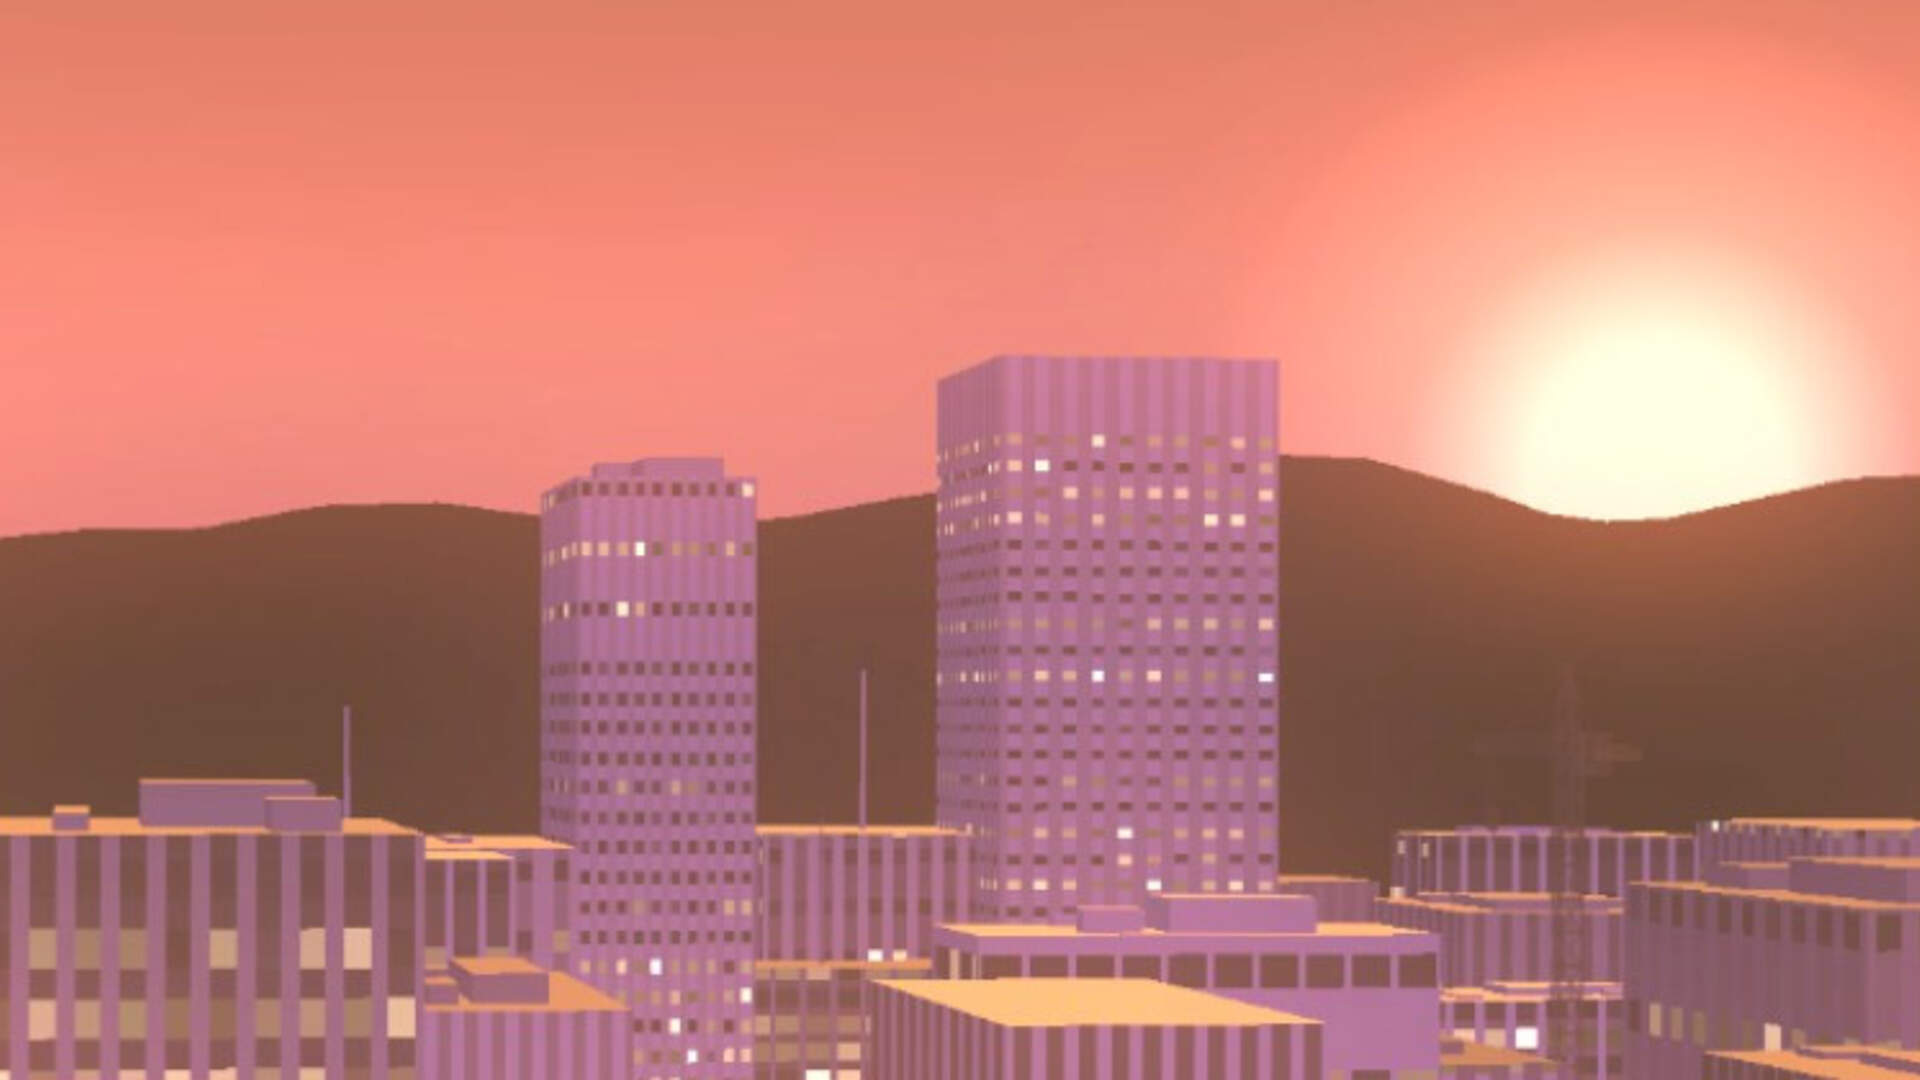 Sunset PC Review: Decline and Fall